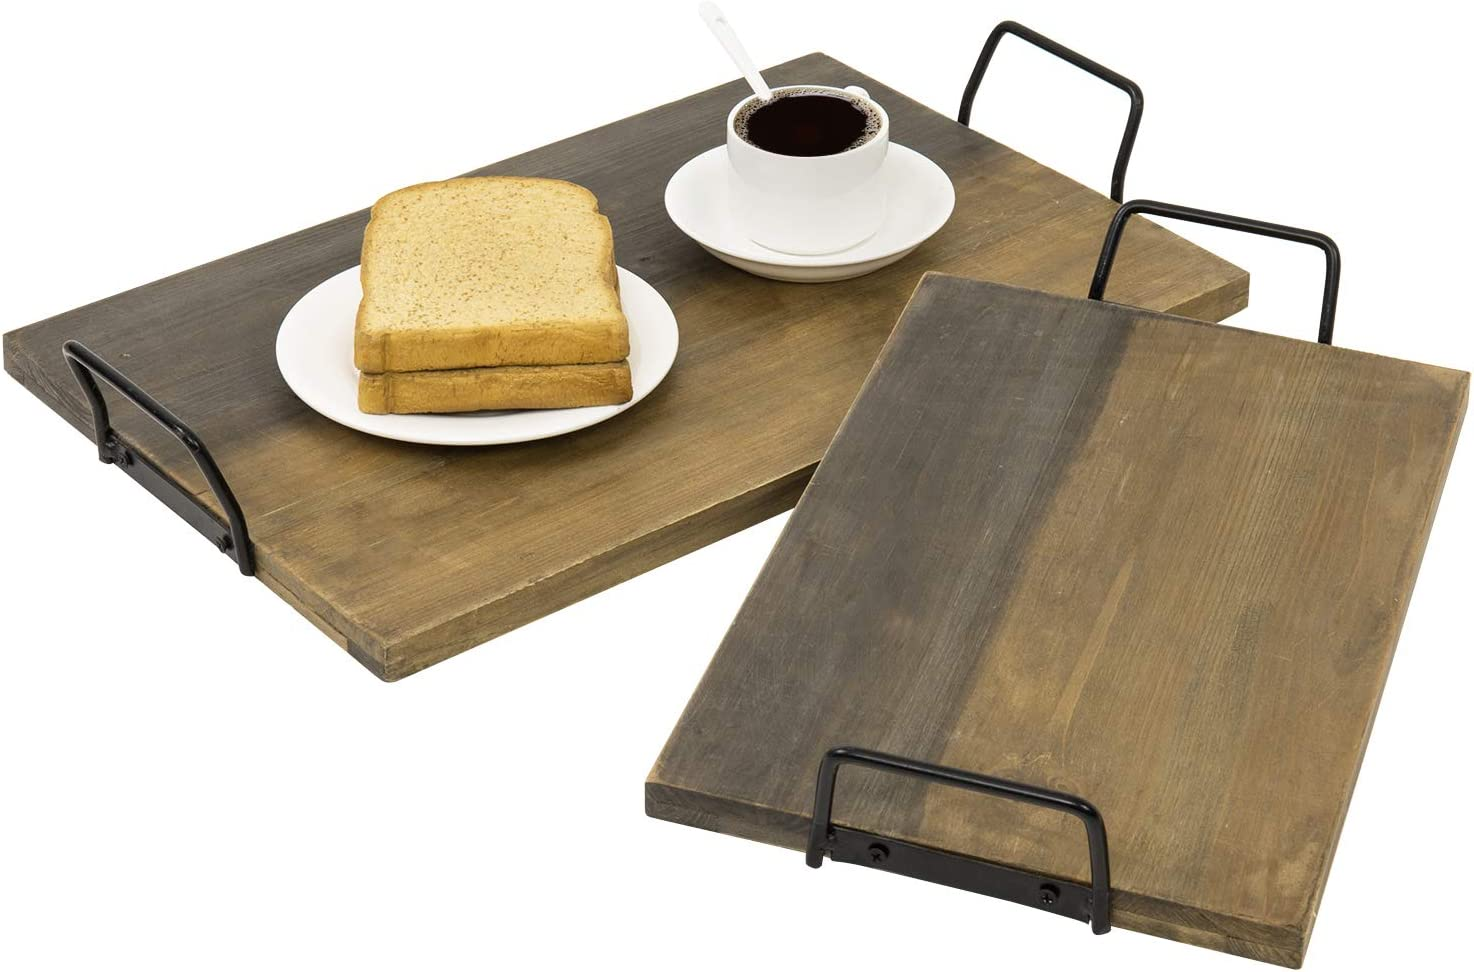 MyGift Aged Wood Plank Style Serving Trays with Black Metal Handles, Set of 2